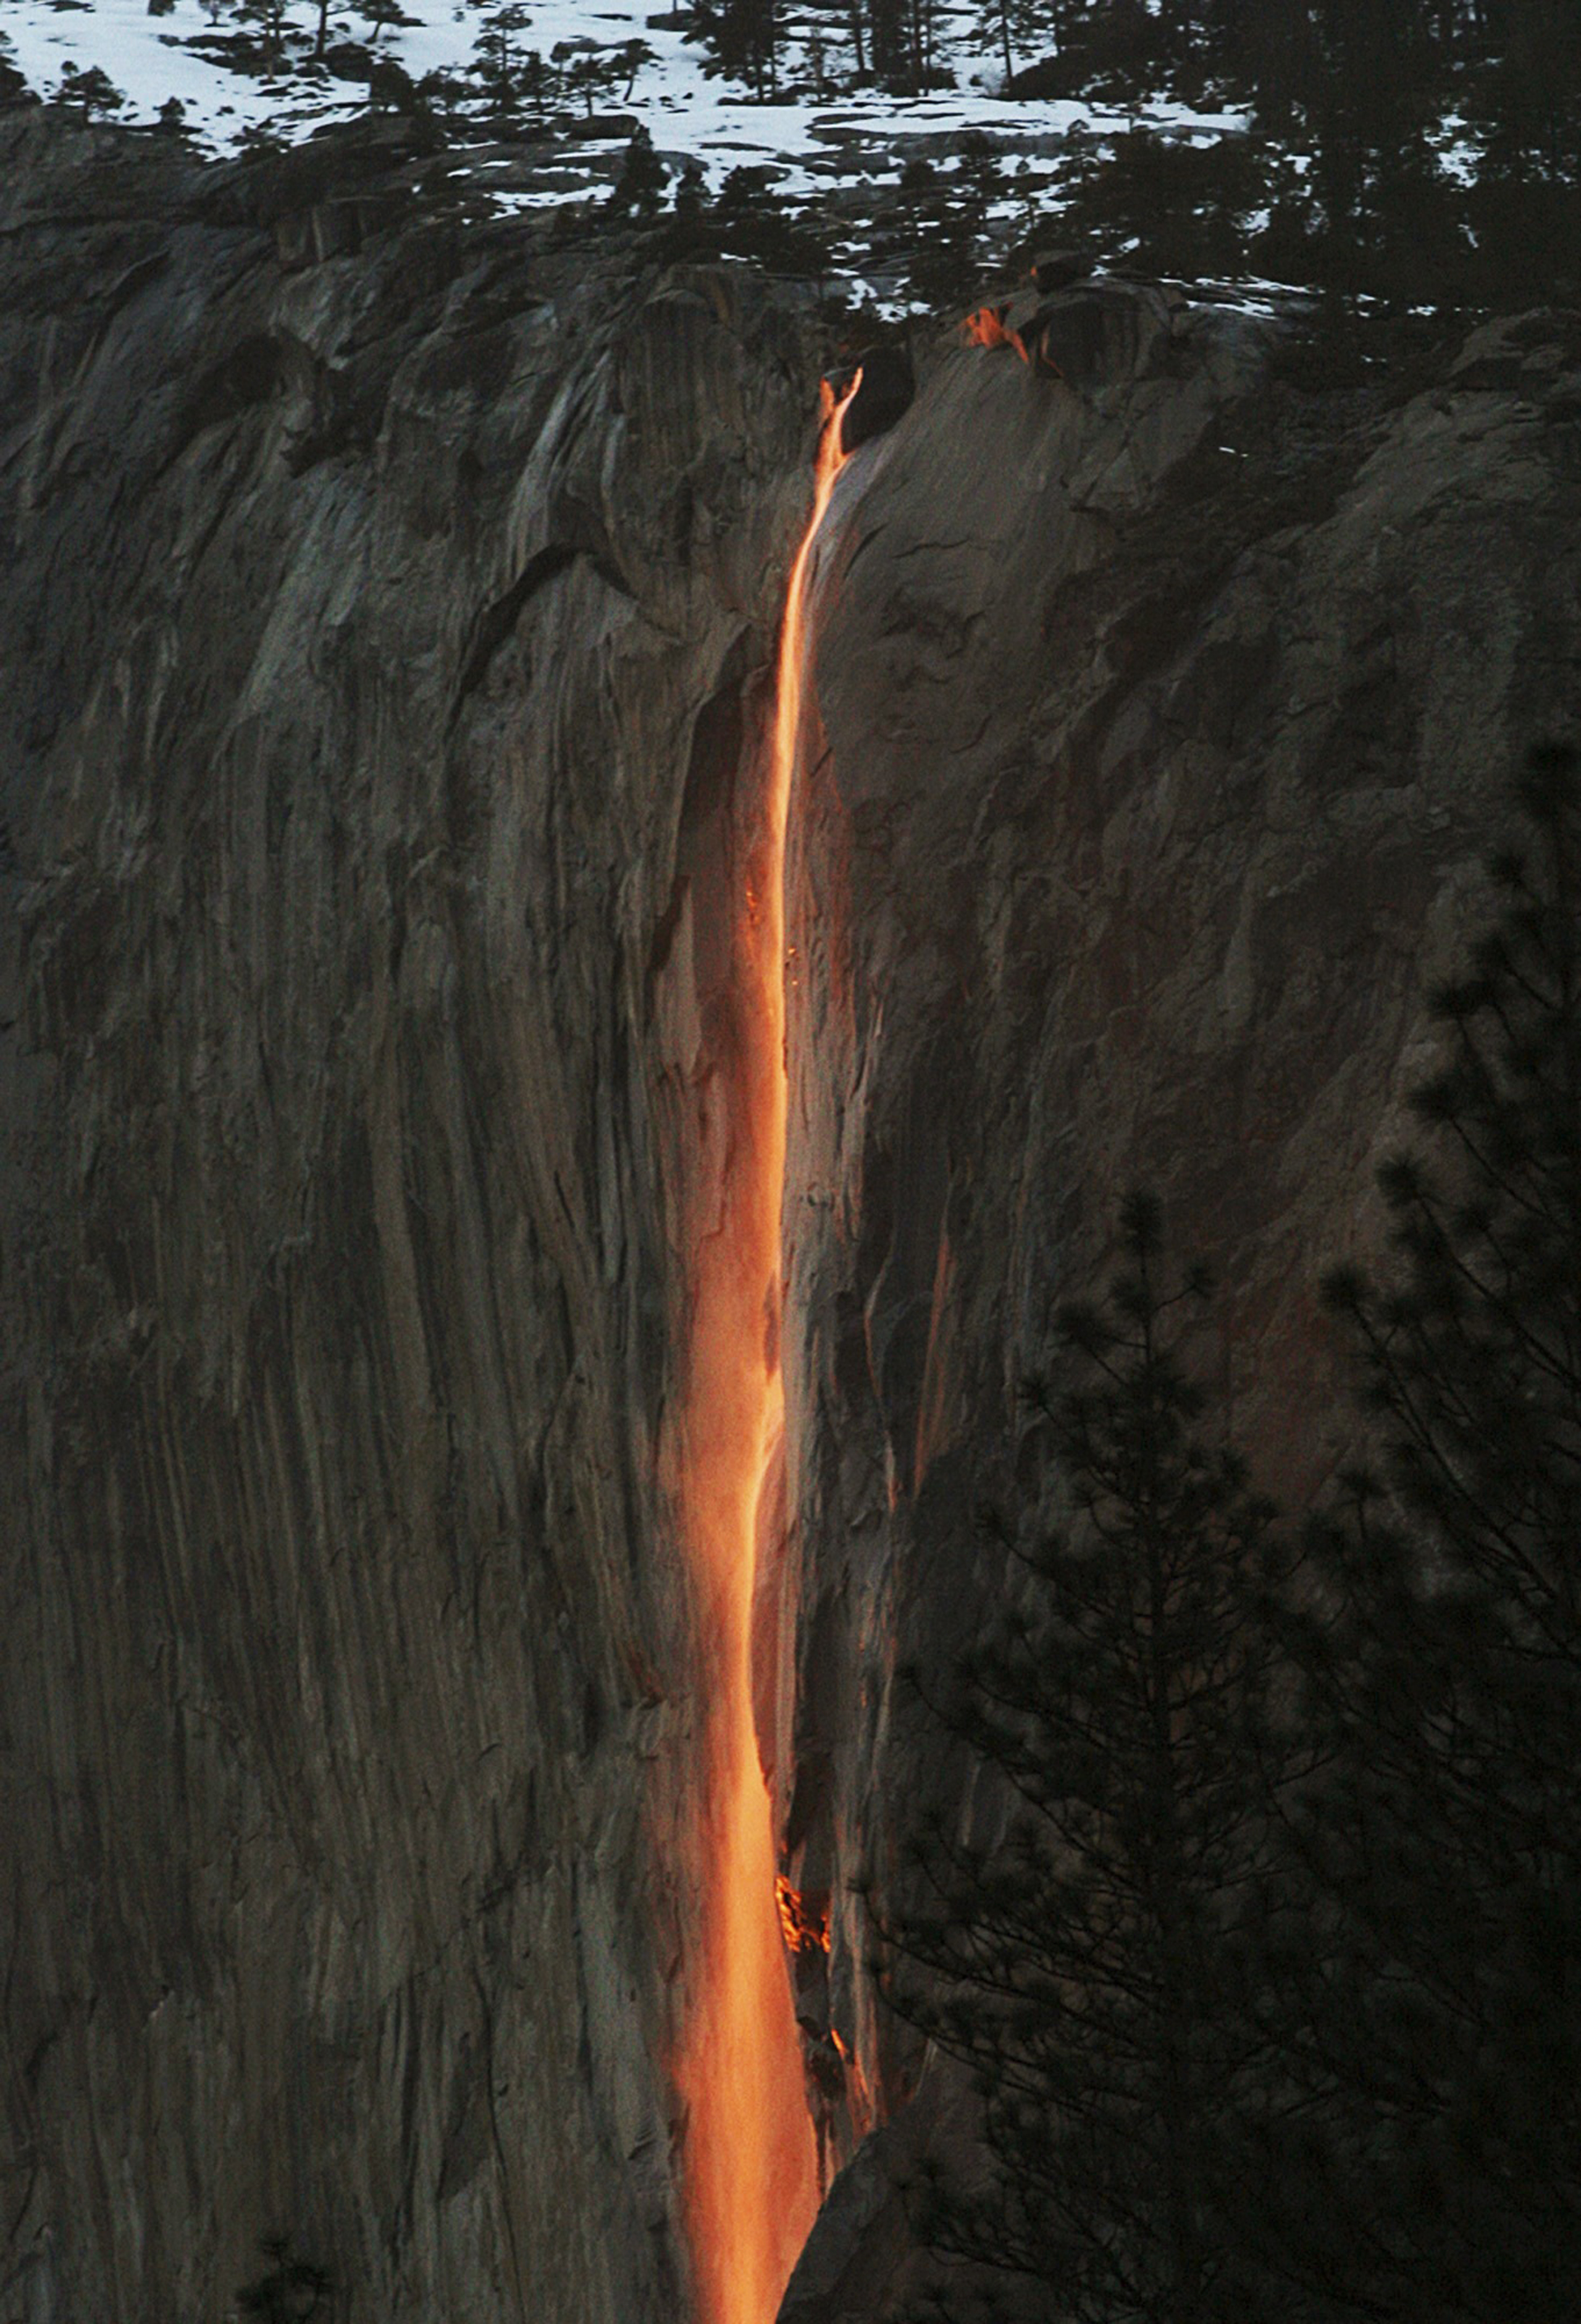 A shaft of sunlight creates a glow on the Horsetail waterfall in Yosemite National Park on Feb 16, 2010.